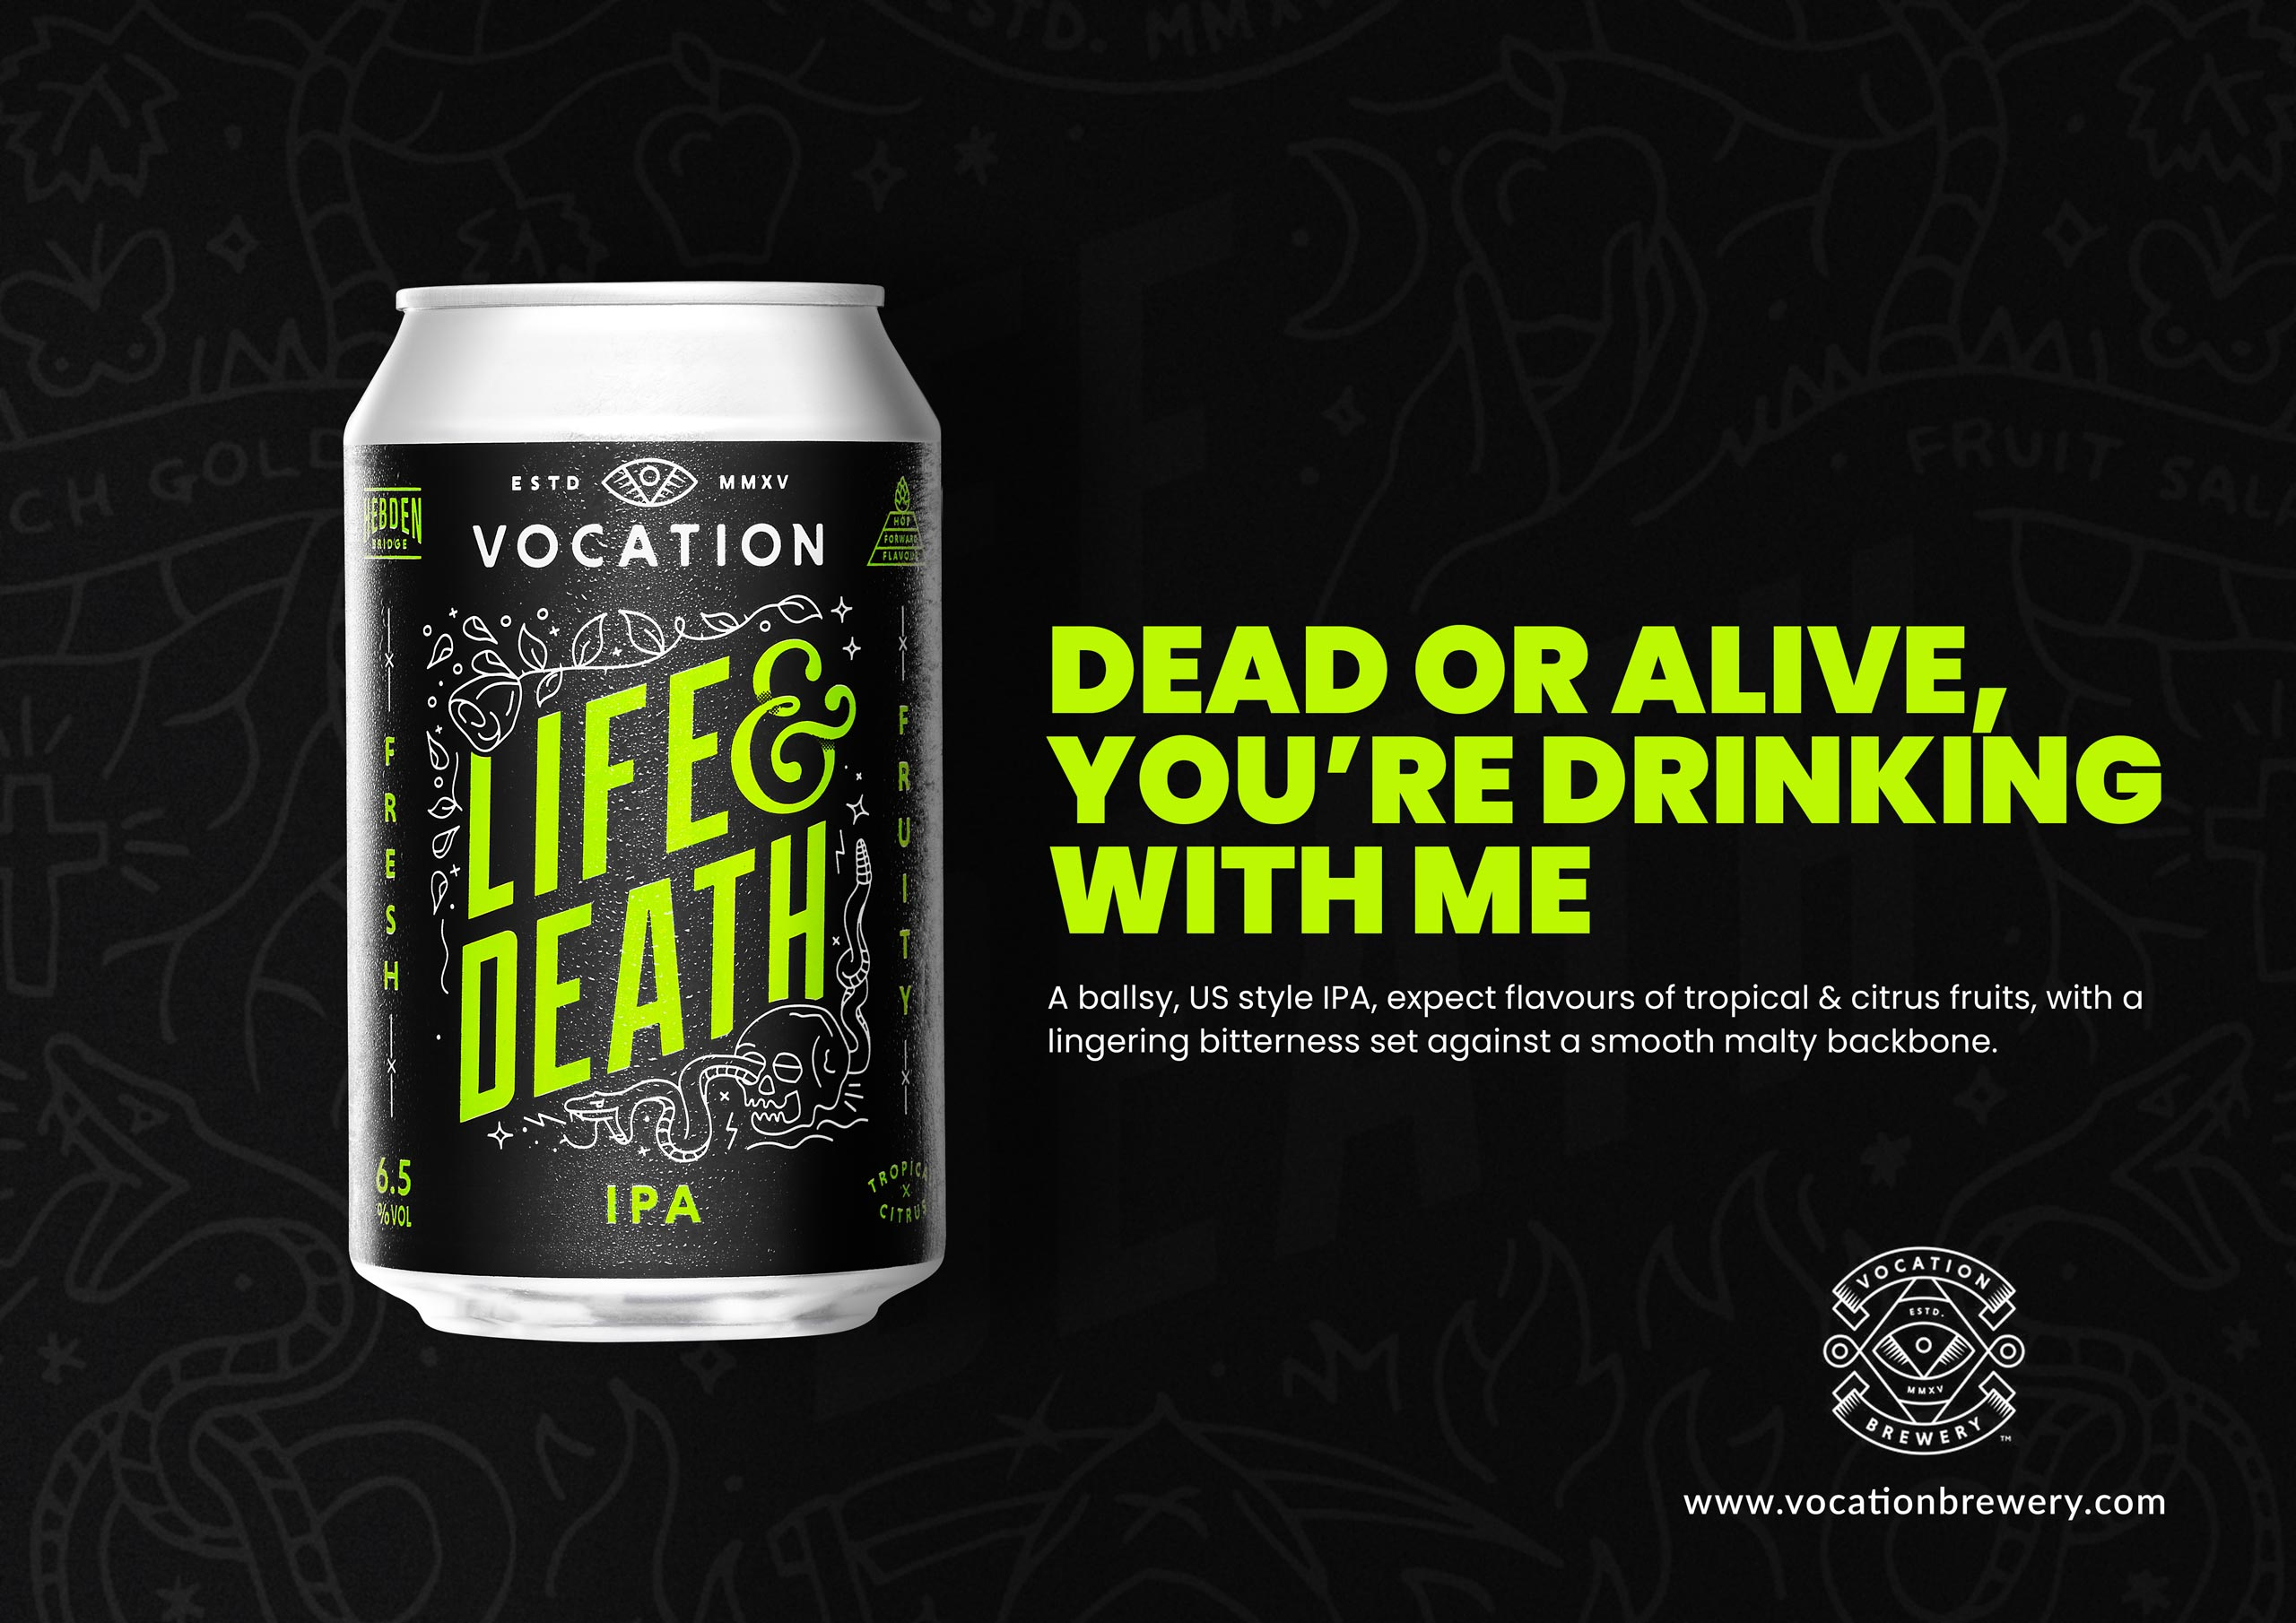 Life and Death Advert Alternative